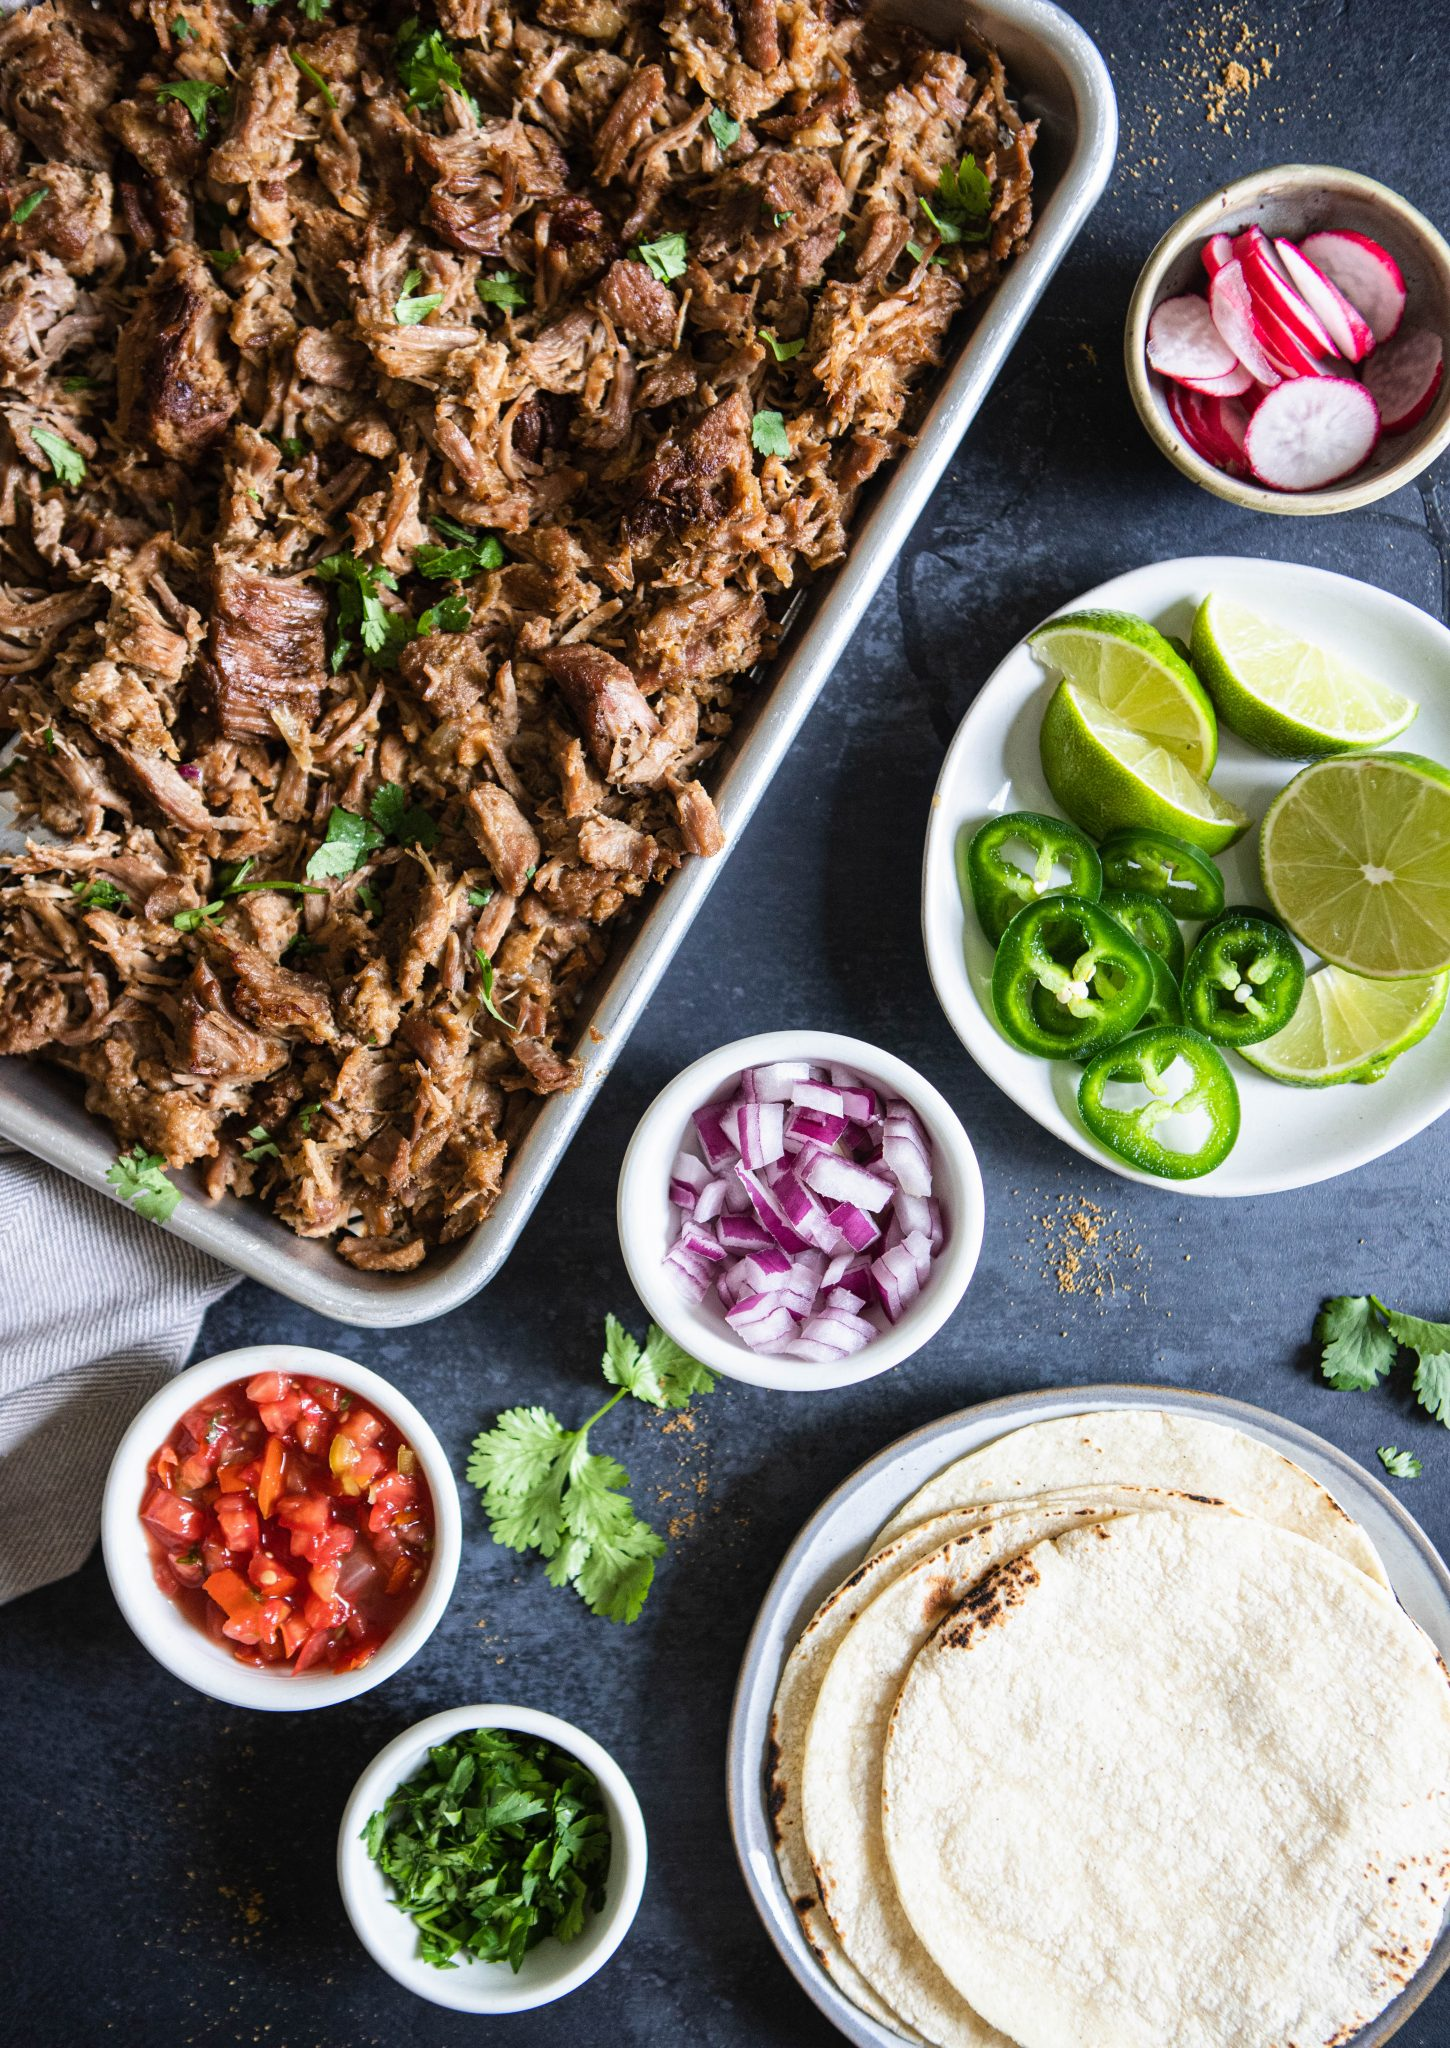 toppings for tacos and tortilla and pork carnitas